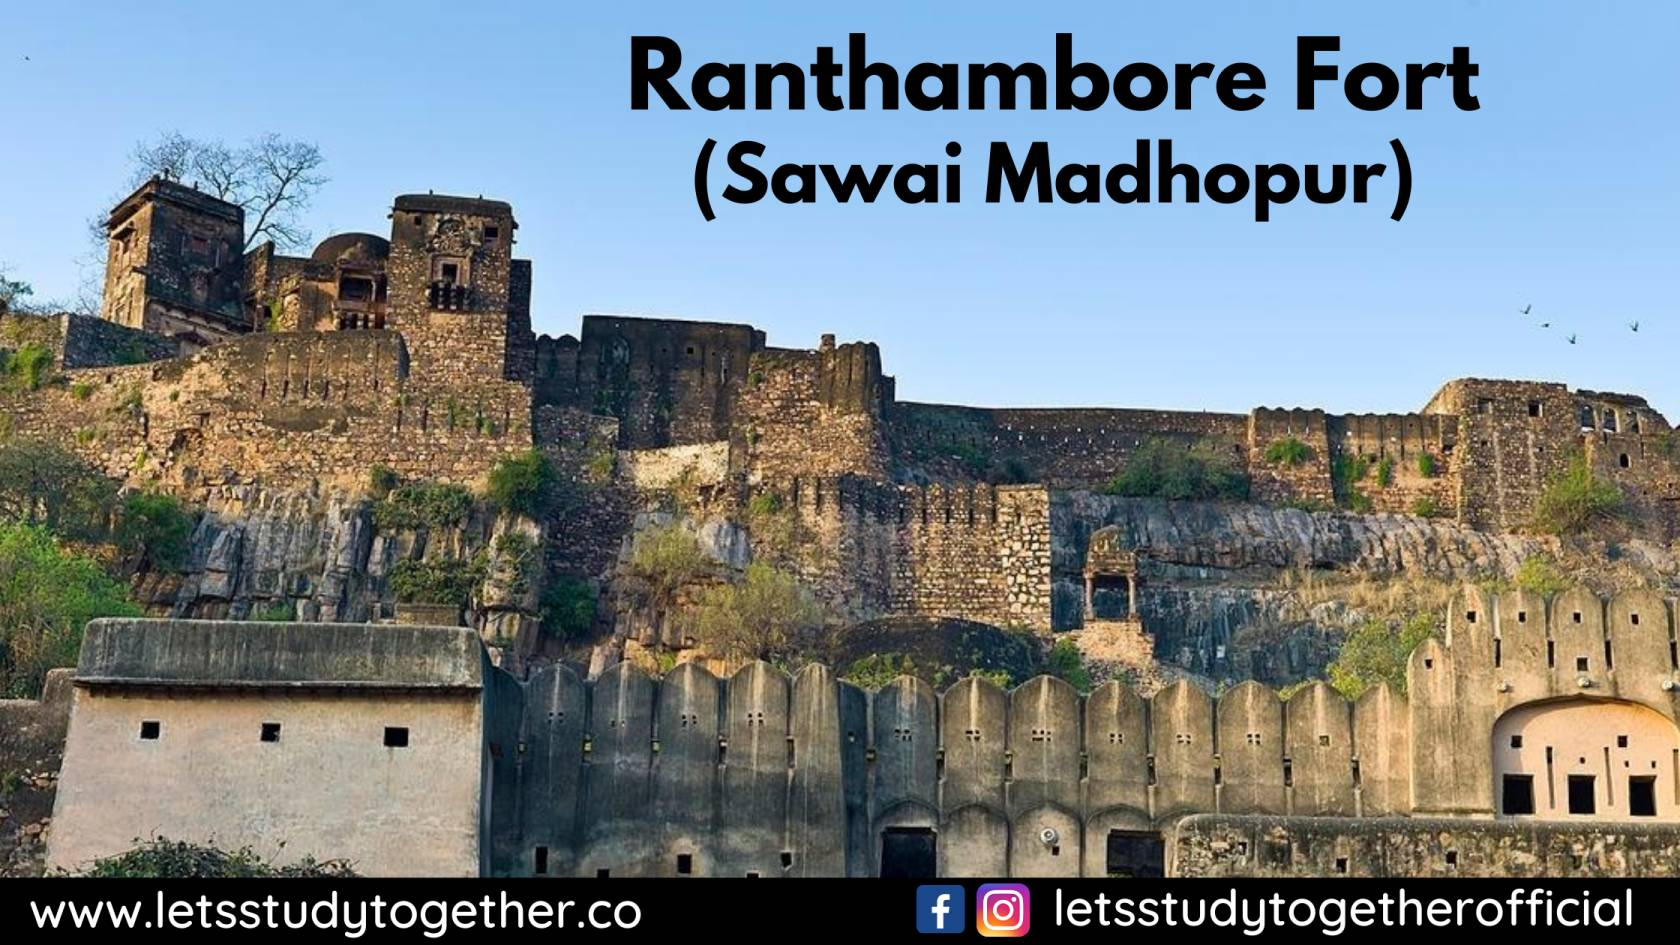 rajasthan tourist places ranthambore fort